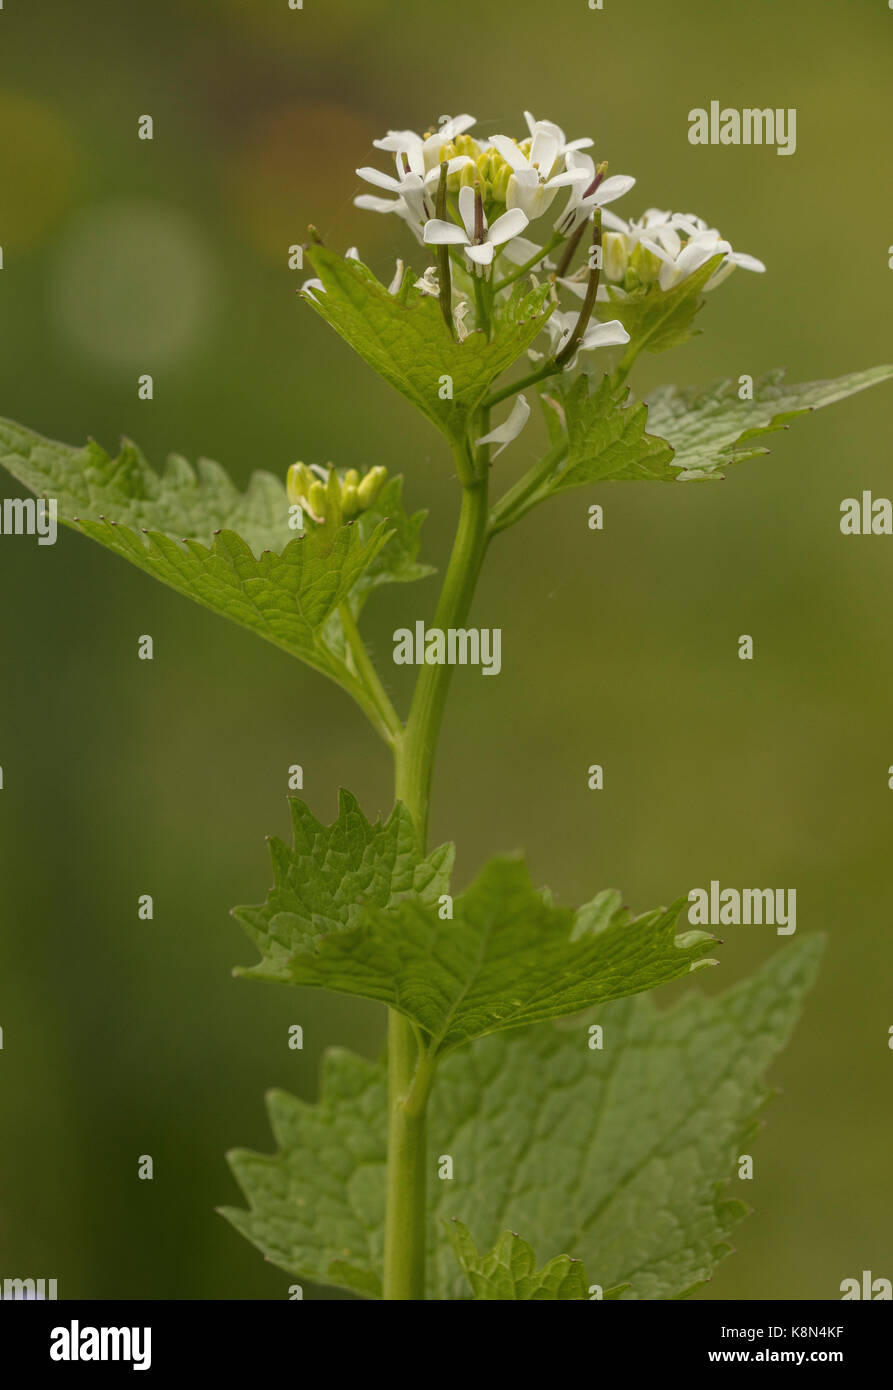 Jack-by-the-hedge or Garlic Mustard, Alliaria petiolata, in flower in spring. Stock Photo